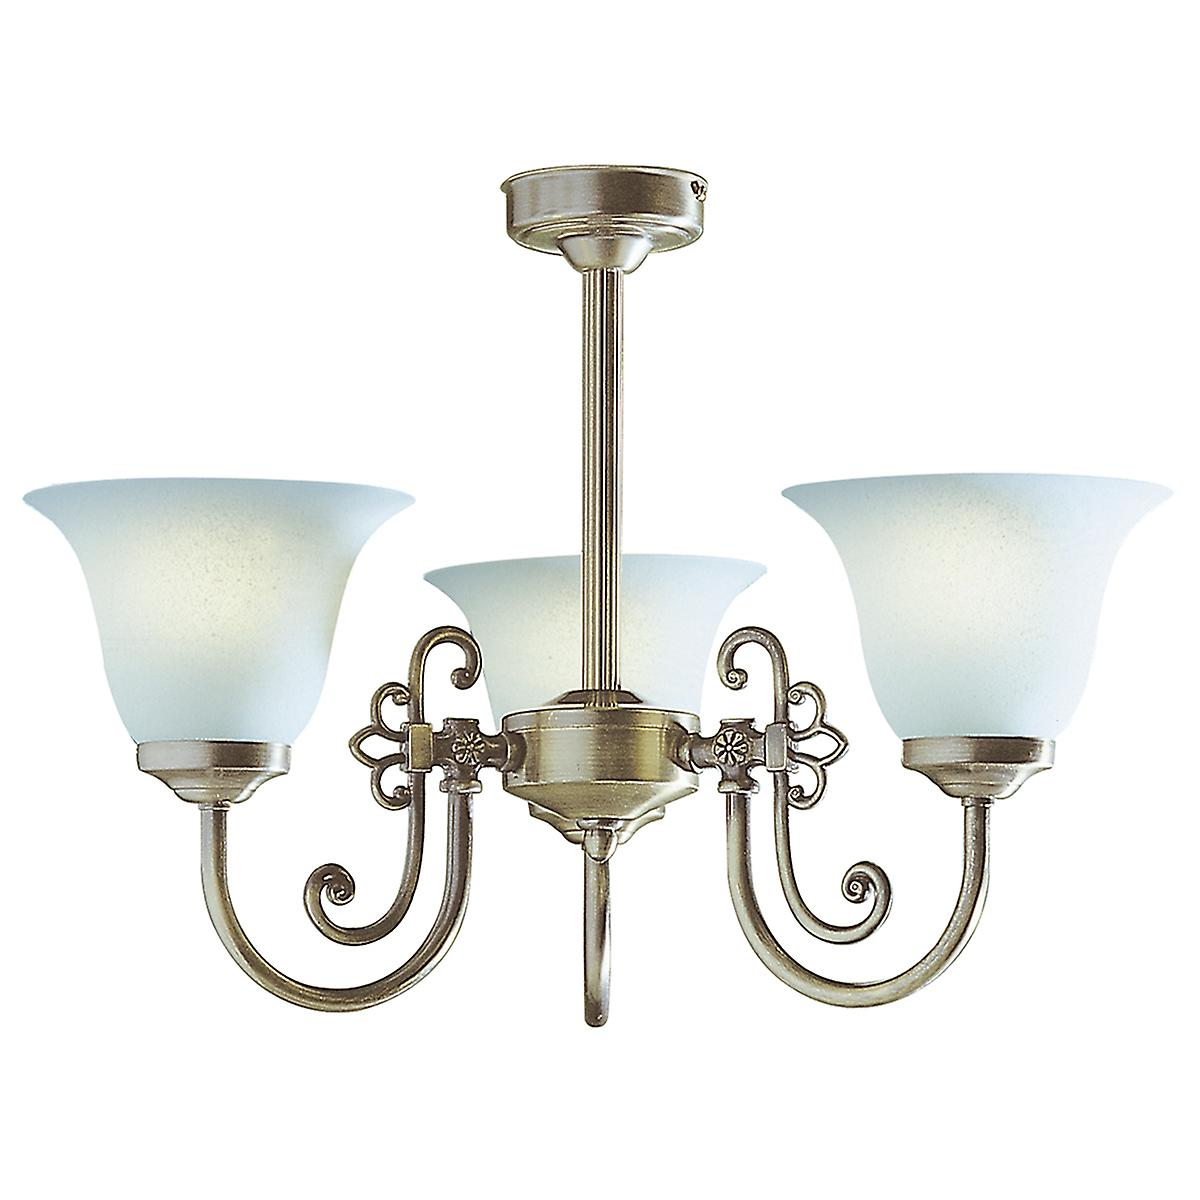 Dar WOO0385 Woodstock 3 Light Ceiling Fitting In An Antique Finish With Glass